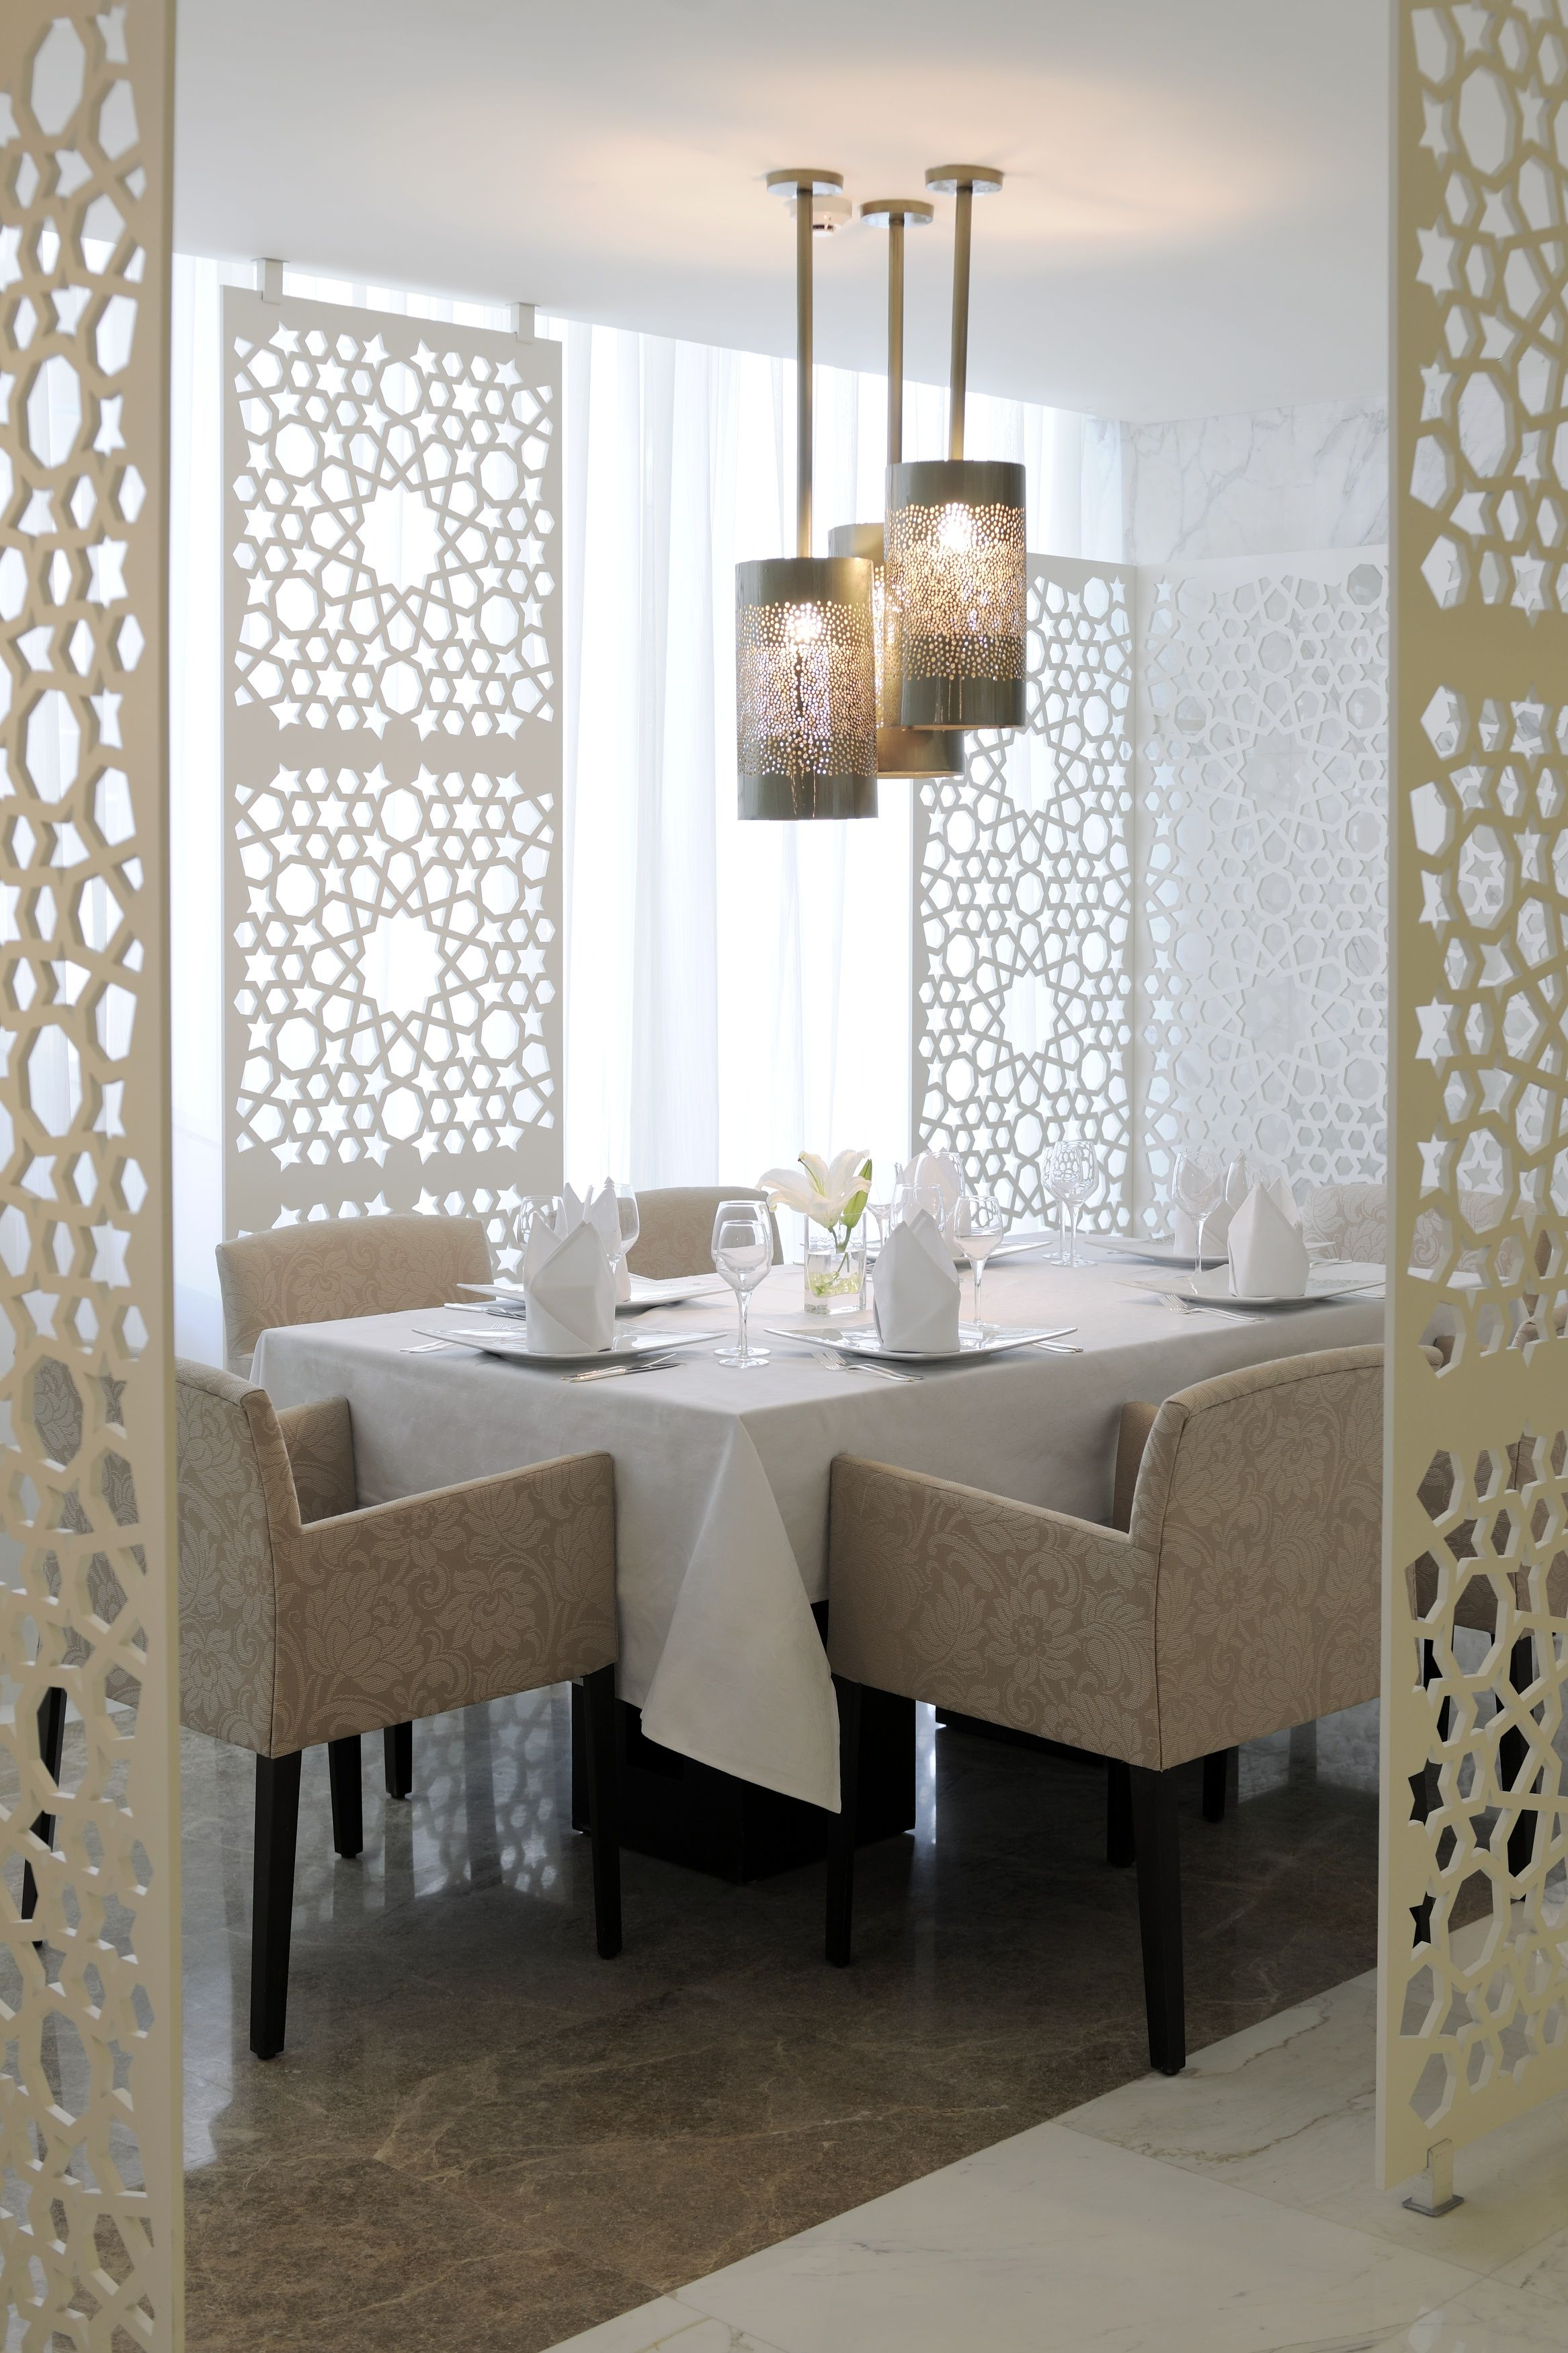 Salon Marroqui Moderno Arabic Restaurant Serving Arabic Gulf Food Concept And